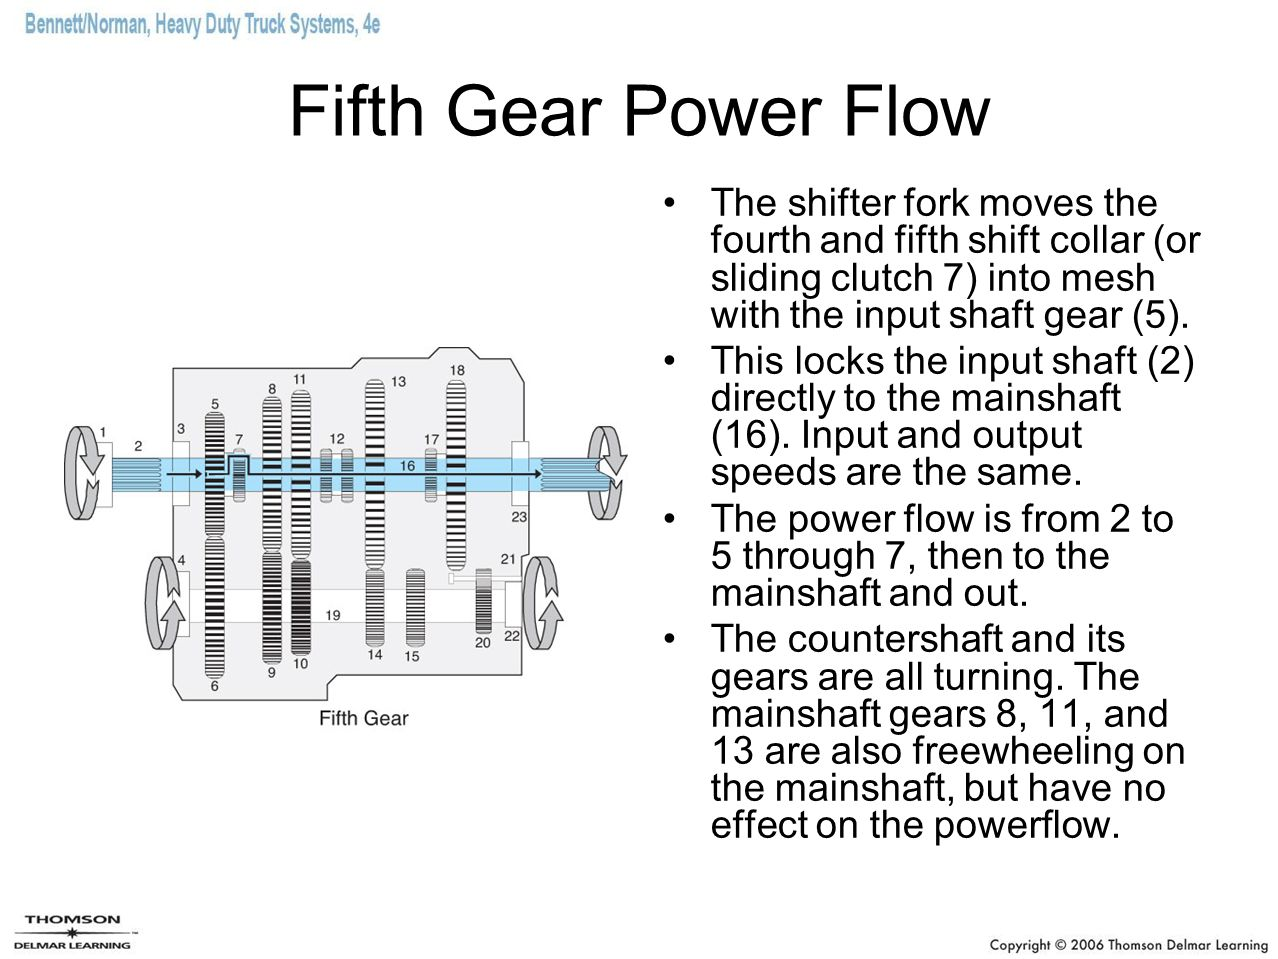 Fifth Gear Power Flow The shifter fork moves the fourth and fifth shift collar (or sliding clutch 7) into mesh with the input shaft gear (5).